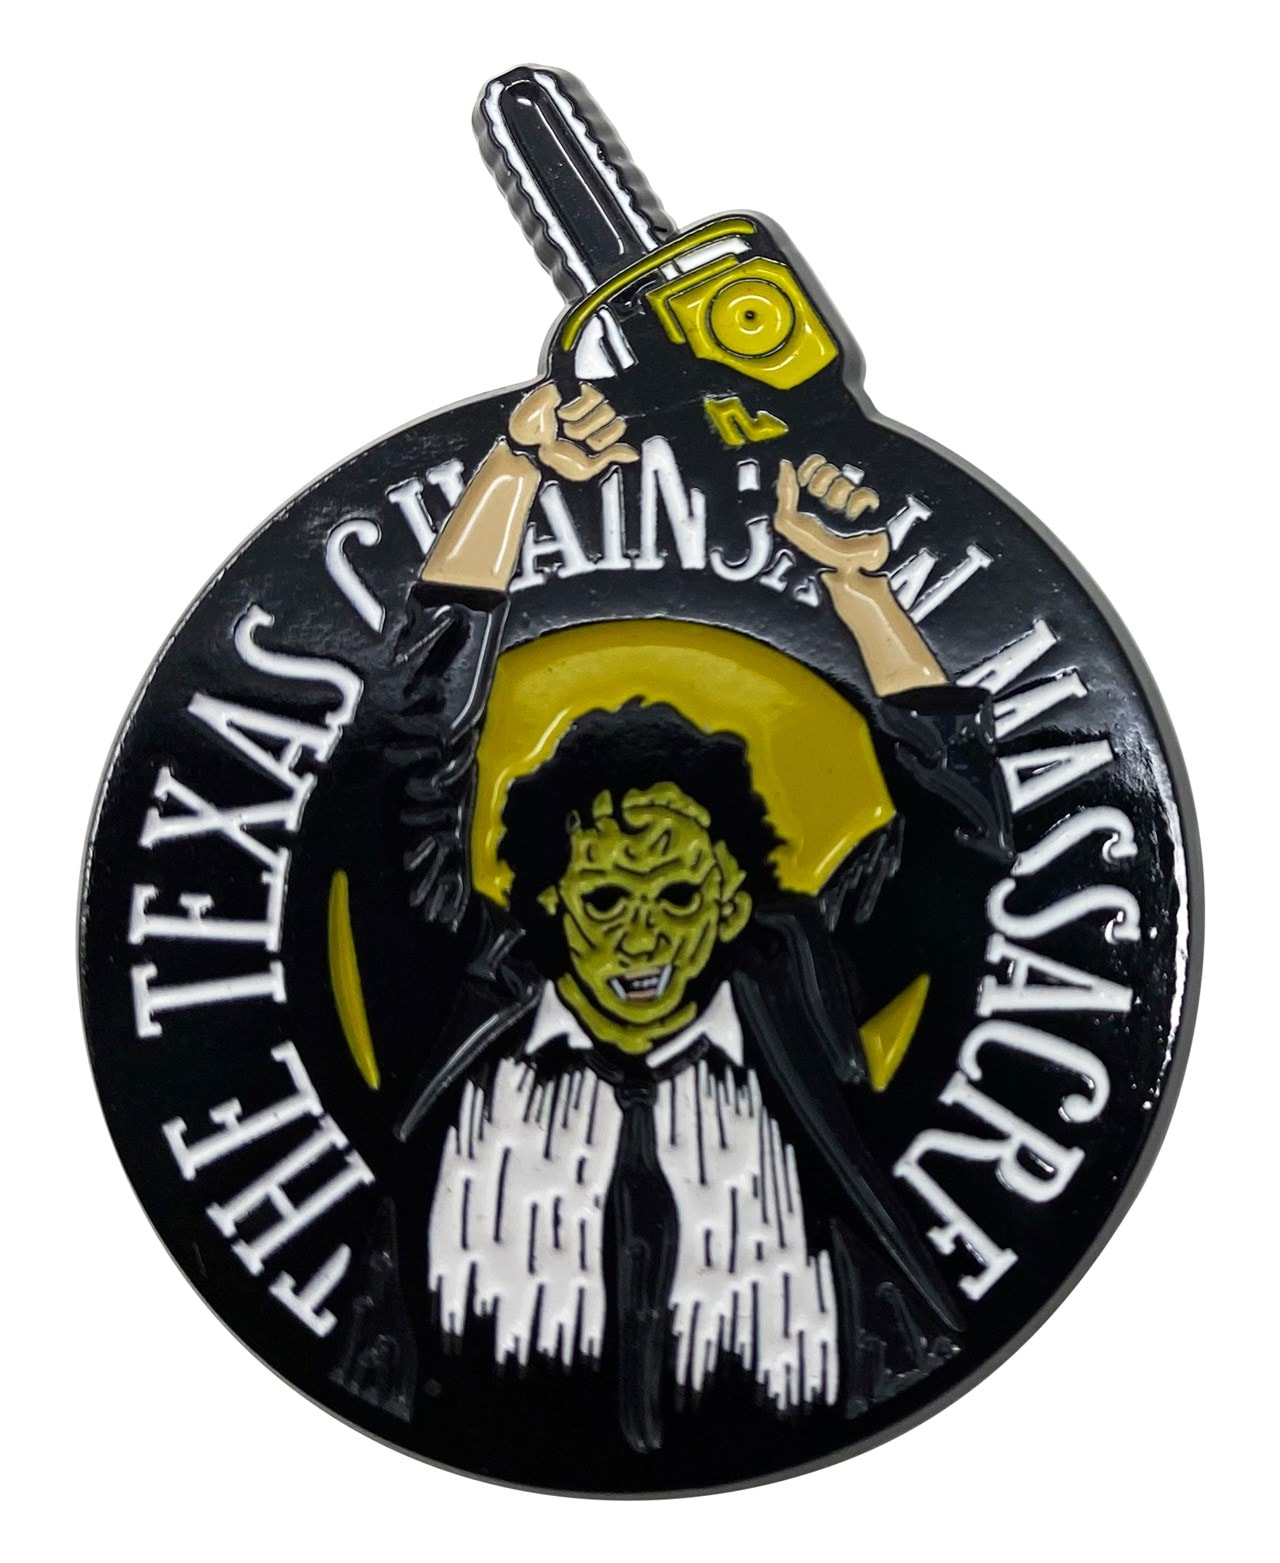 Texas Chainsaw Massacre: Limited Edition Pin Badge - 3